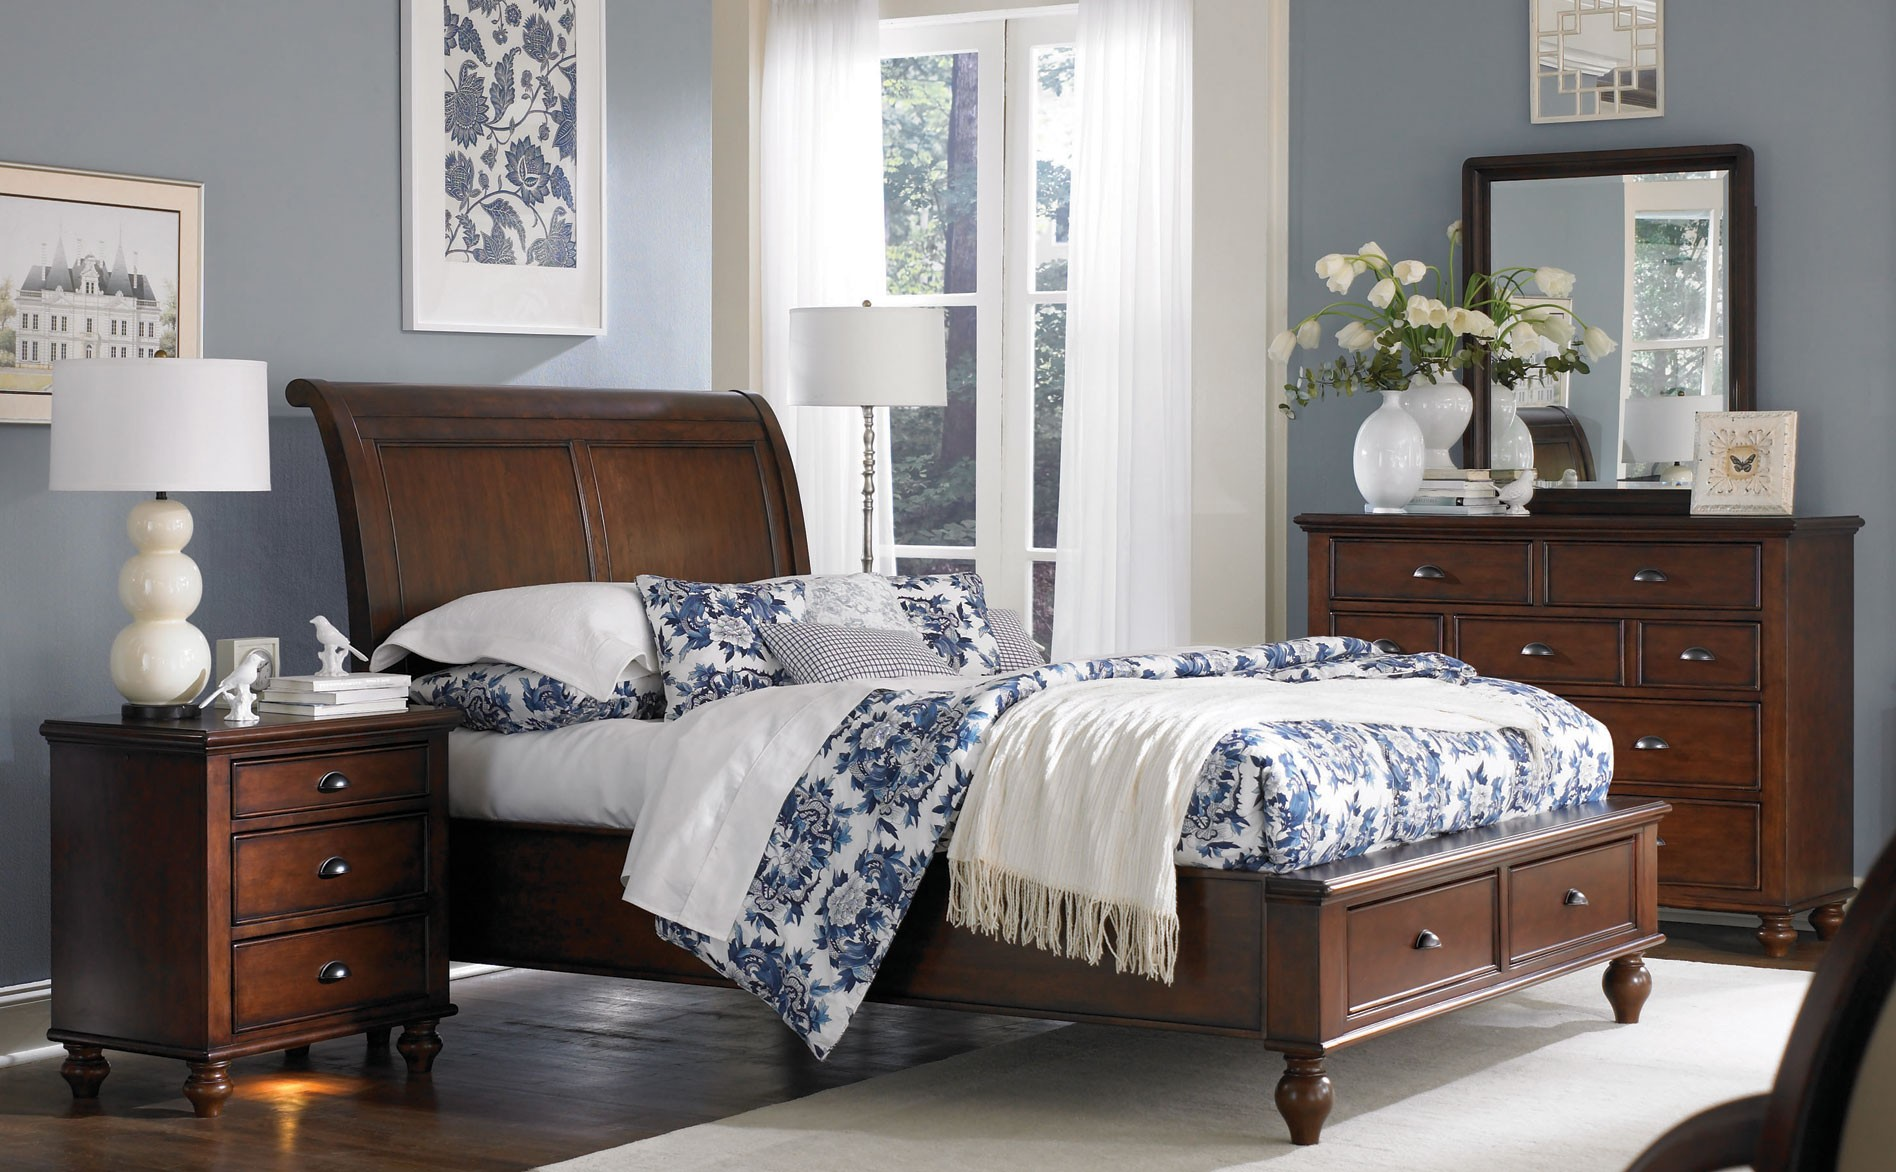 bedroom ideas cherry furniture | hawk haven